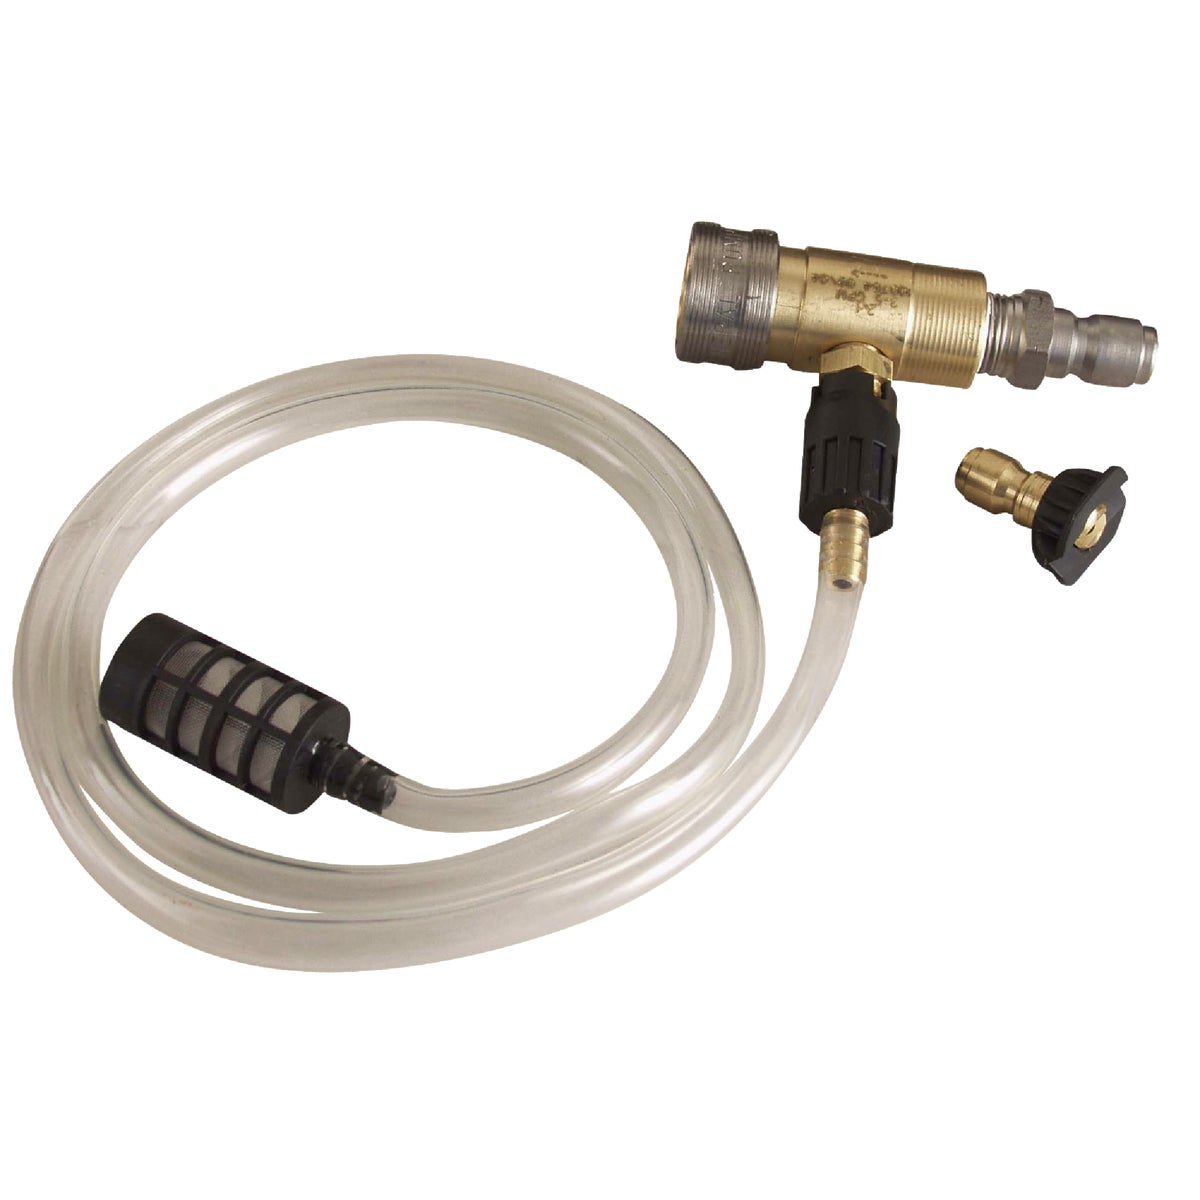 Q/C DETERGENT INJECTOR - AW-8400-0021 by Mi T M Corp